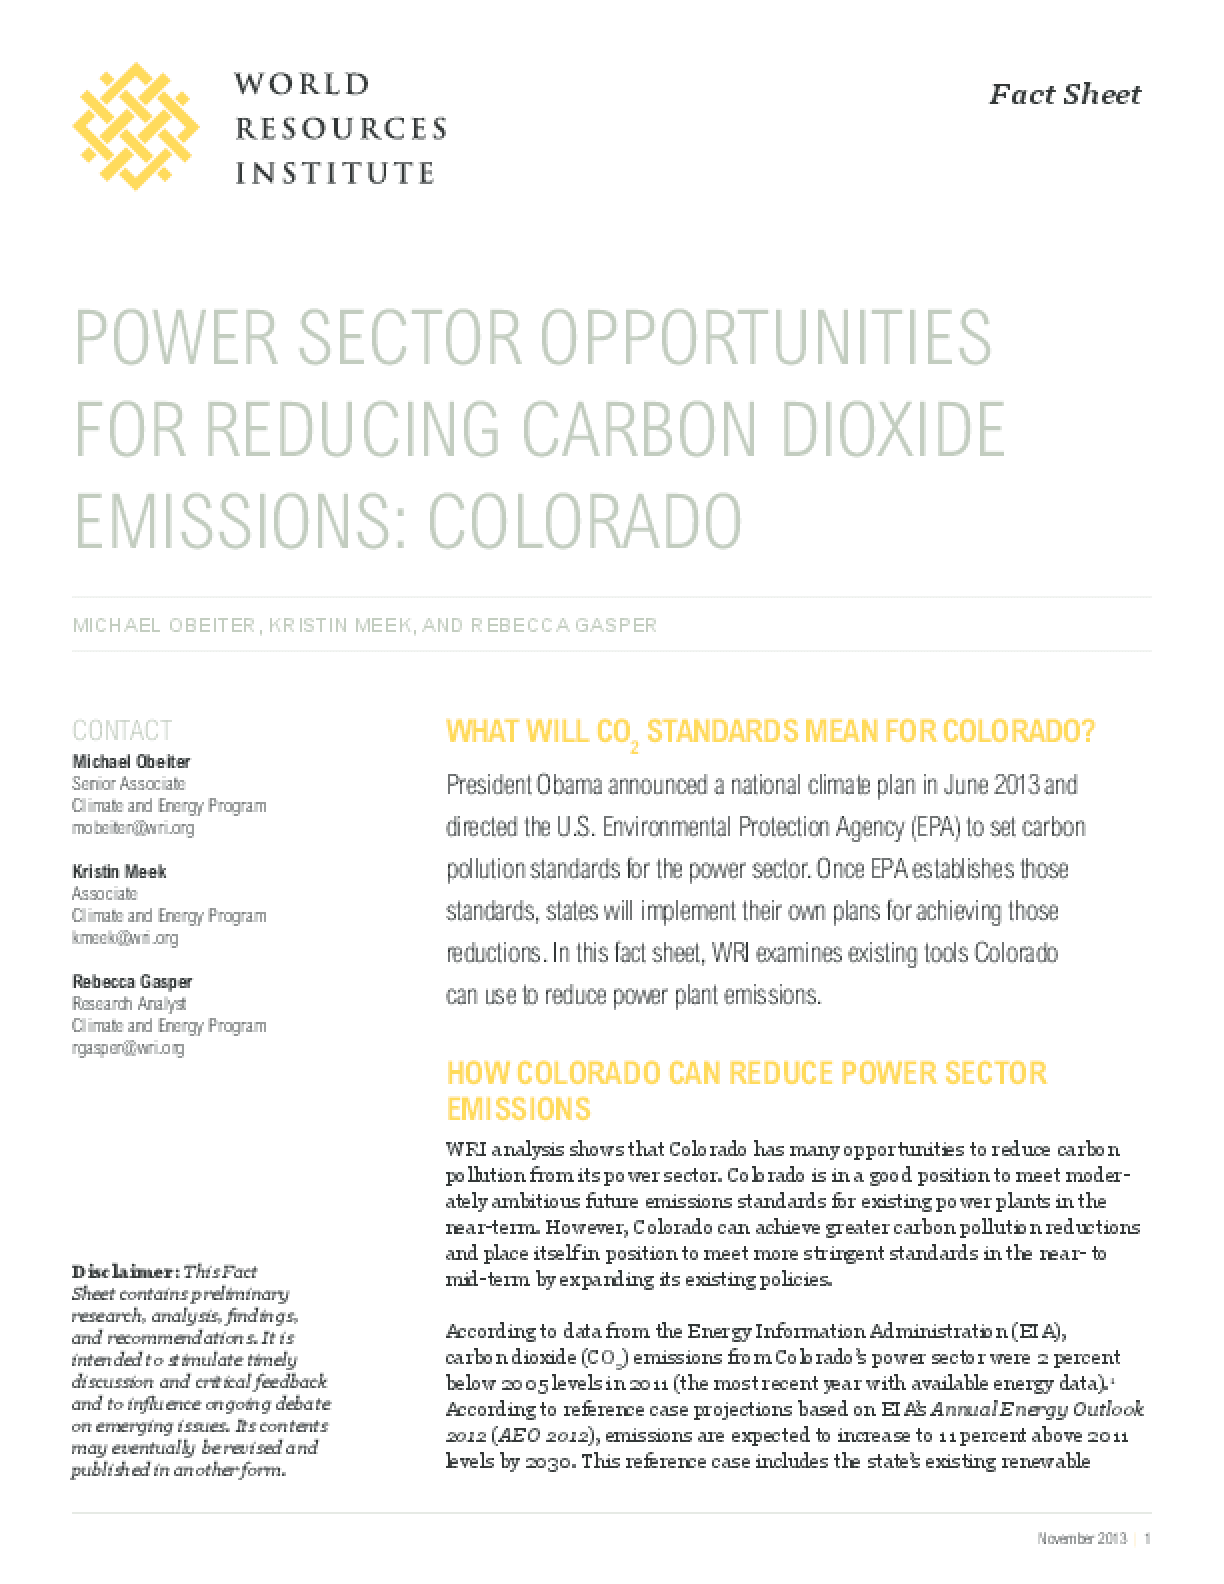 Power Sector Opportunities for Reducing Carbon Dioxide Emissions: Colorado